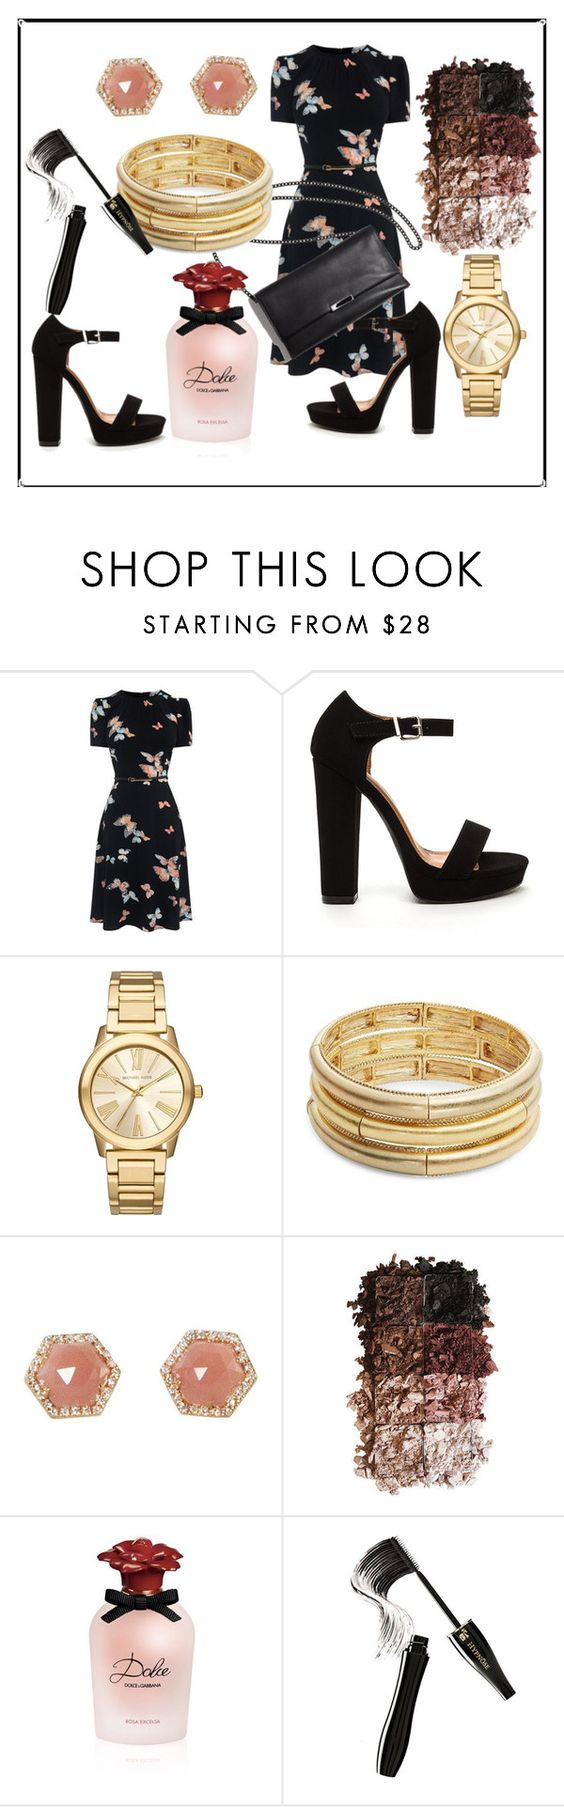 """Untitled #43"" by ruth-jaimie-hollingsworth on Polyvore featuring Michael Kors, Nanette Lepore, Luna Skye, LORAC, Dolce&Gabbana and Lancôme"